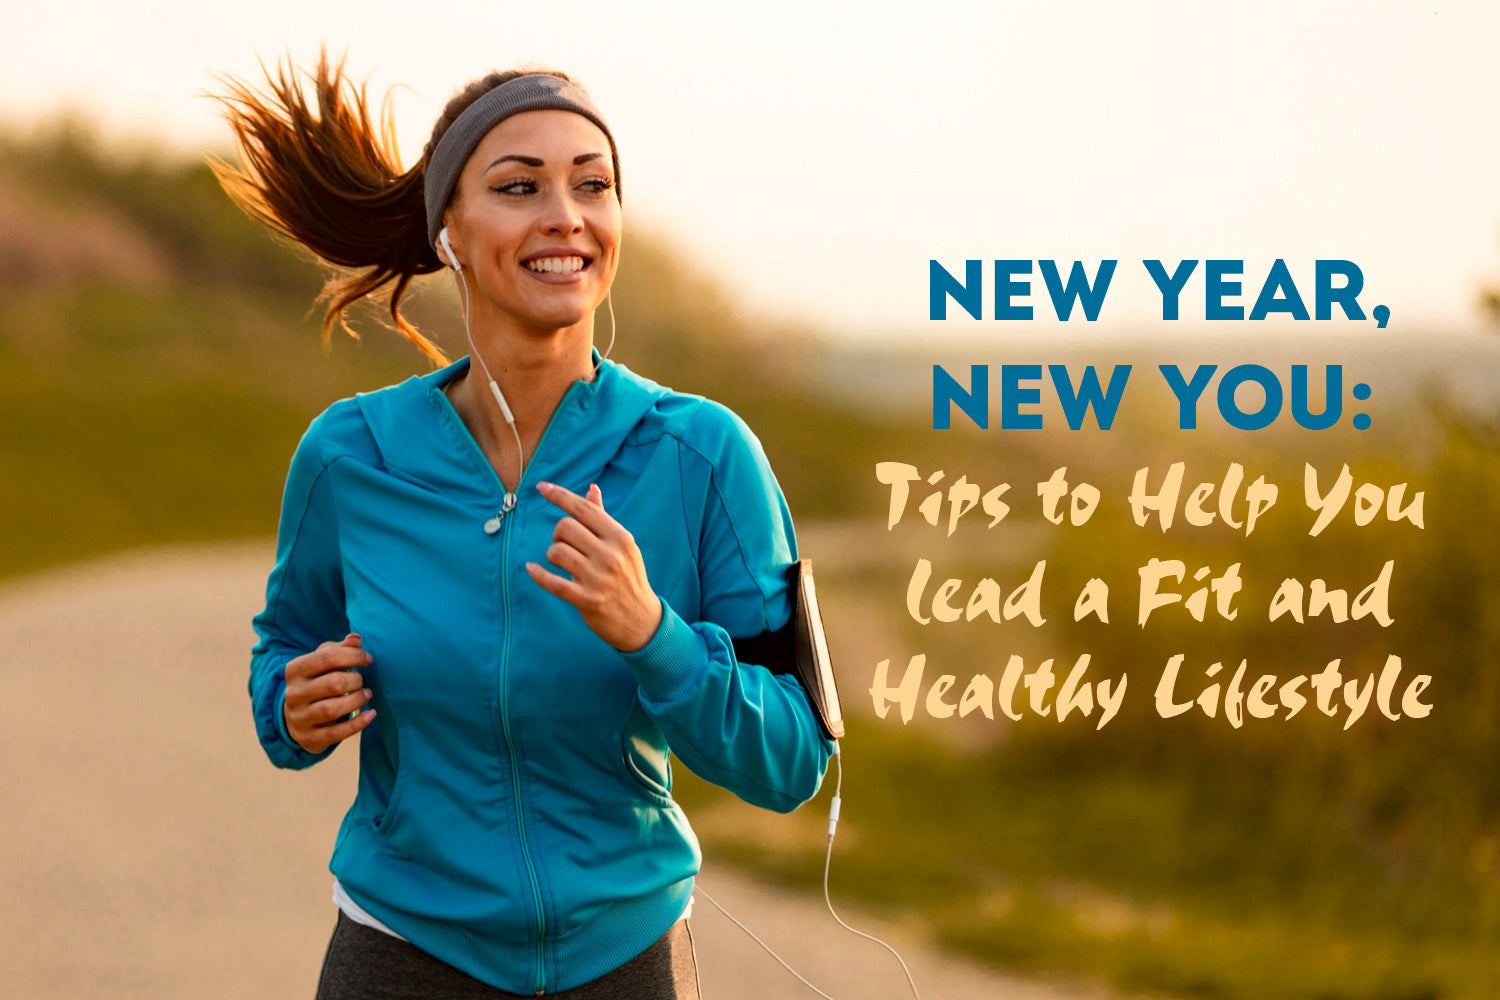 New Year, New You: Tips to Help You lead a Fit and Healthy Lifestyle